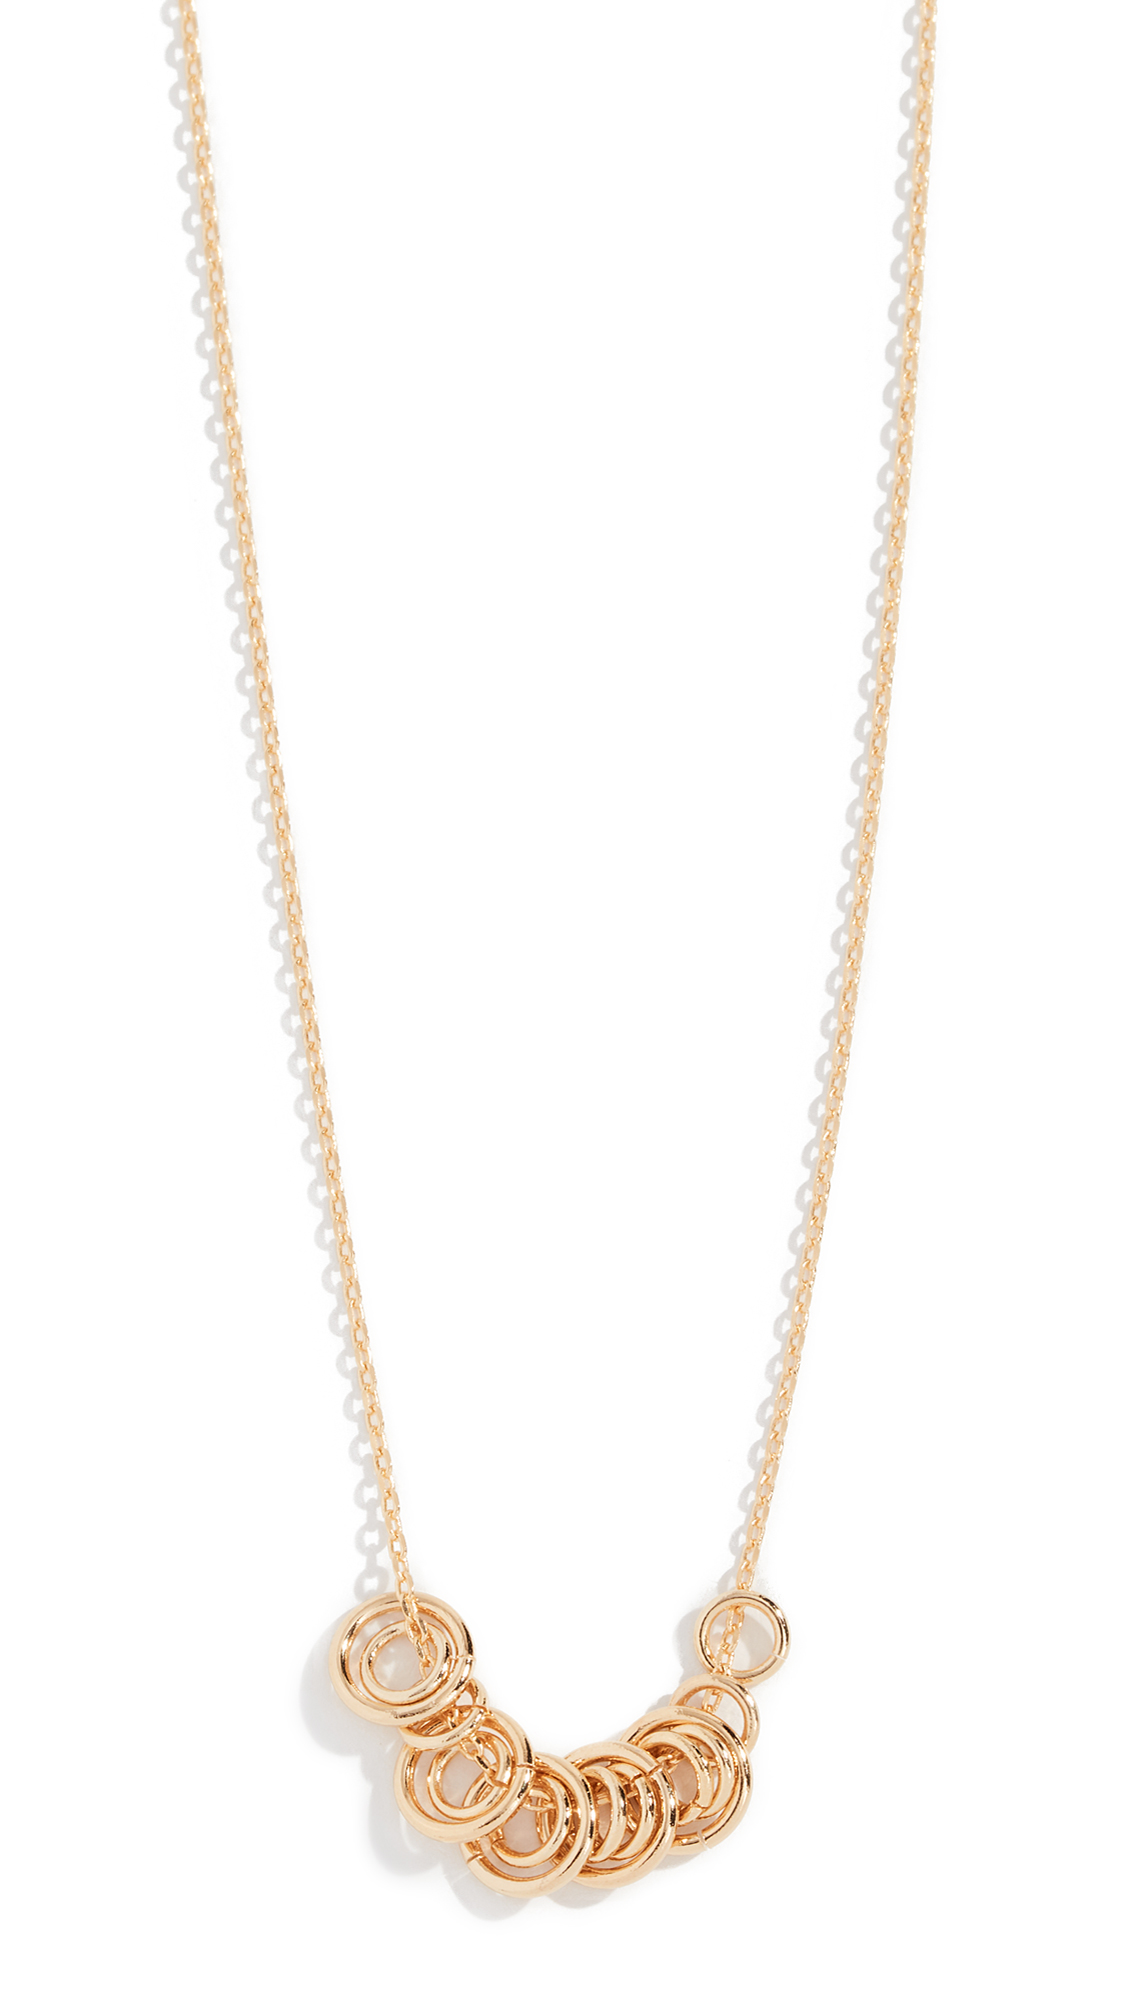 CLOVERPOST Net Necklace in Yellow Gold